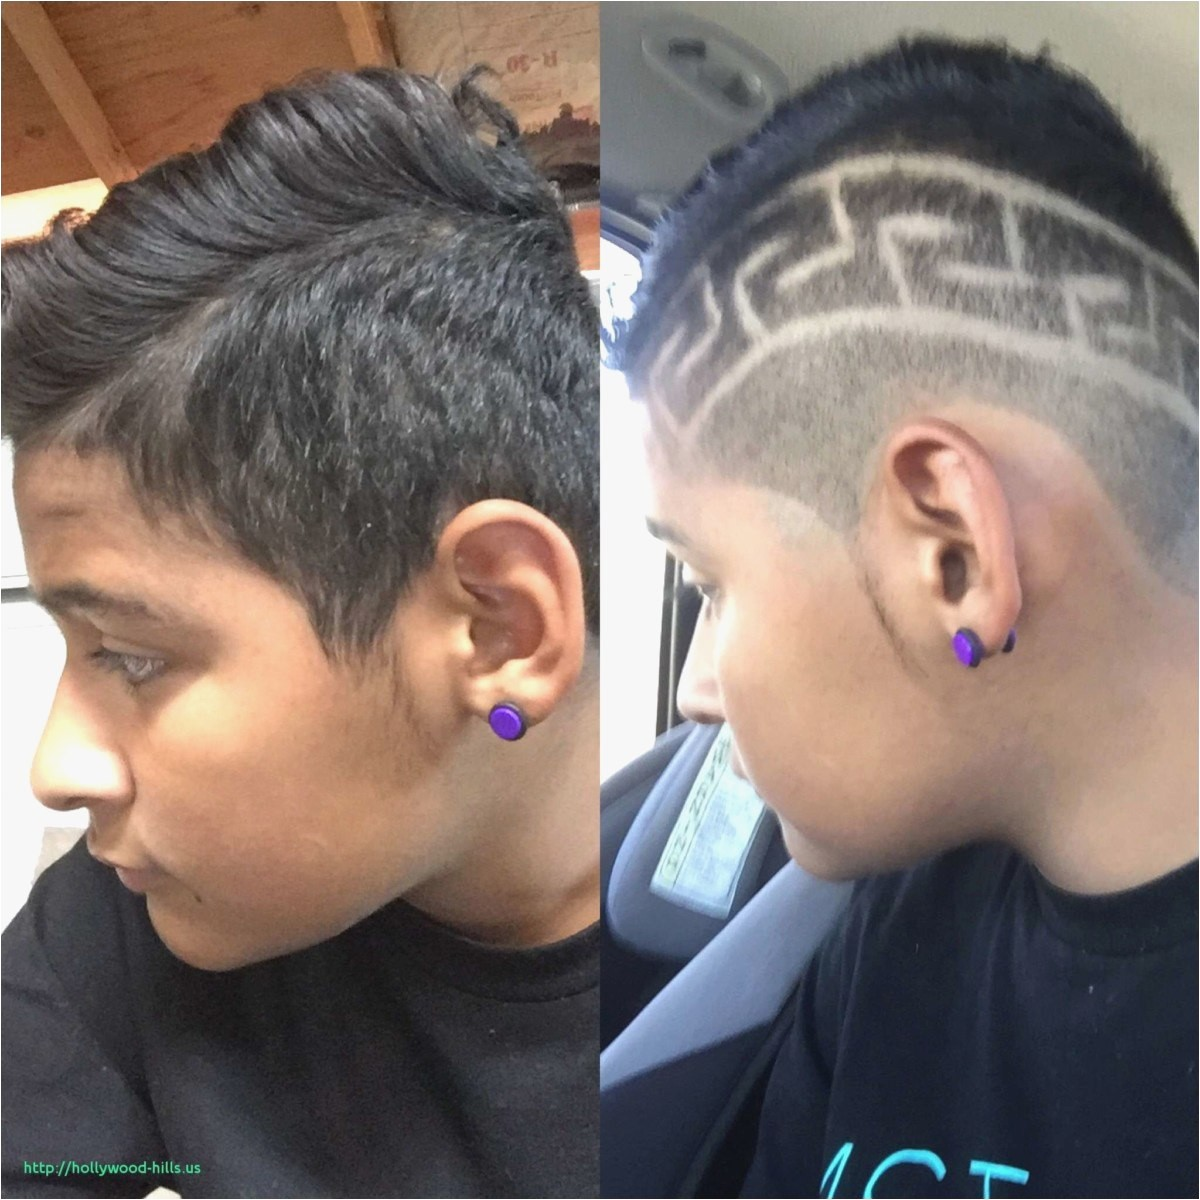 Gym Hairstyles for Curly Hair Boys Hairstyles Model Gym Hairstyles Male New Hairstyles for Men